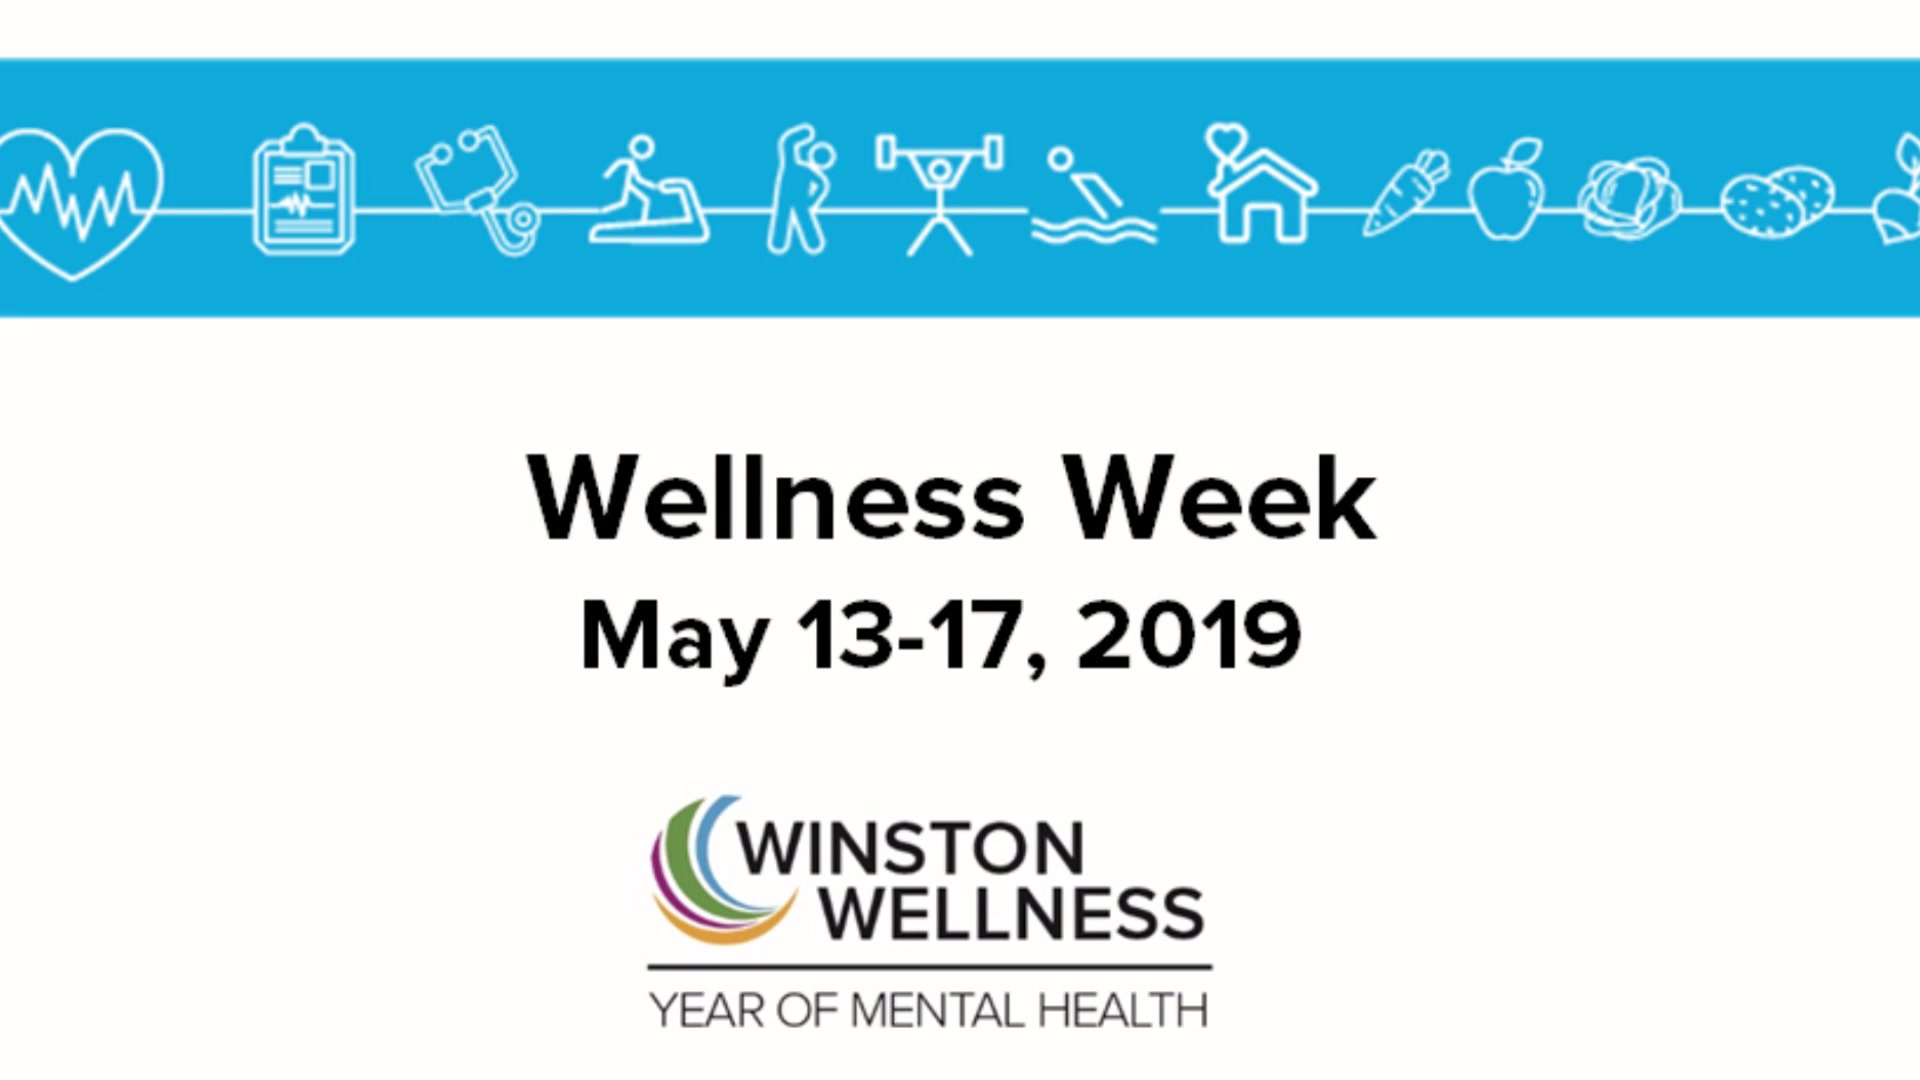 Winston Wellness Week 2019 Supports Year Of Mental Health